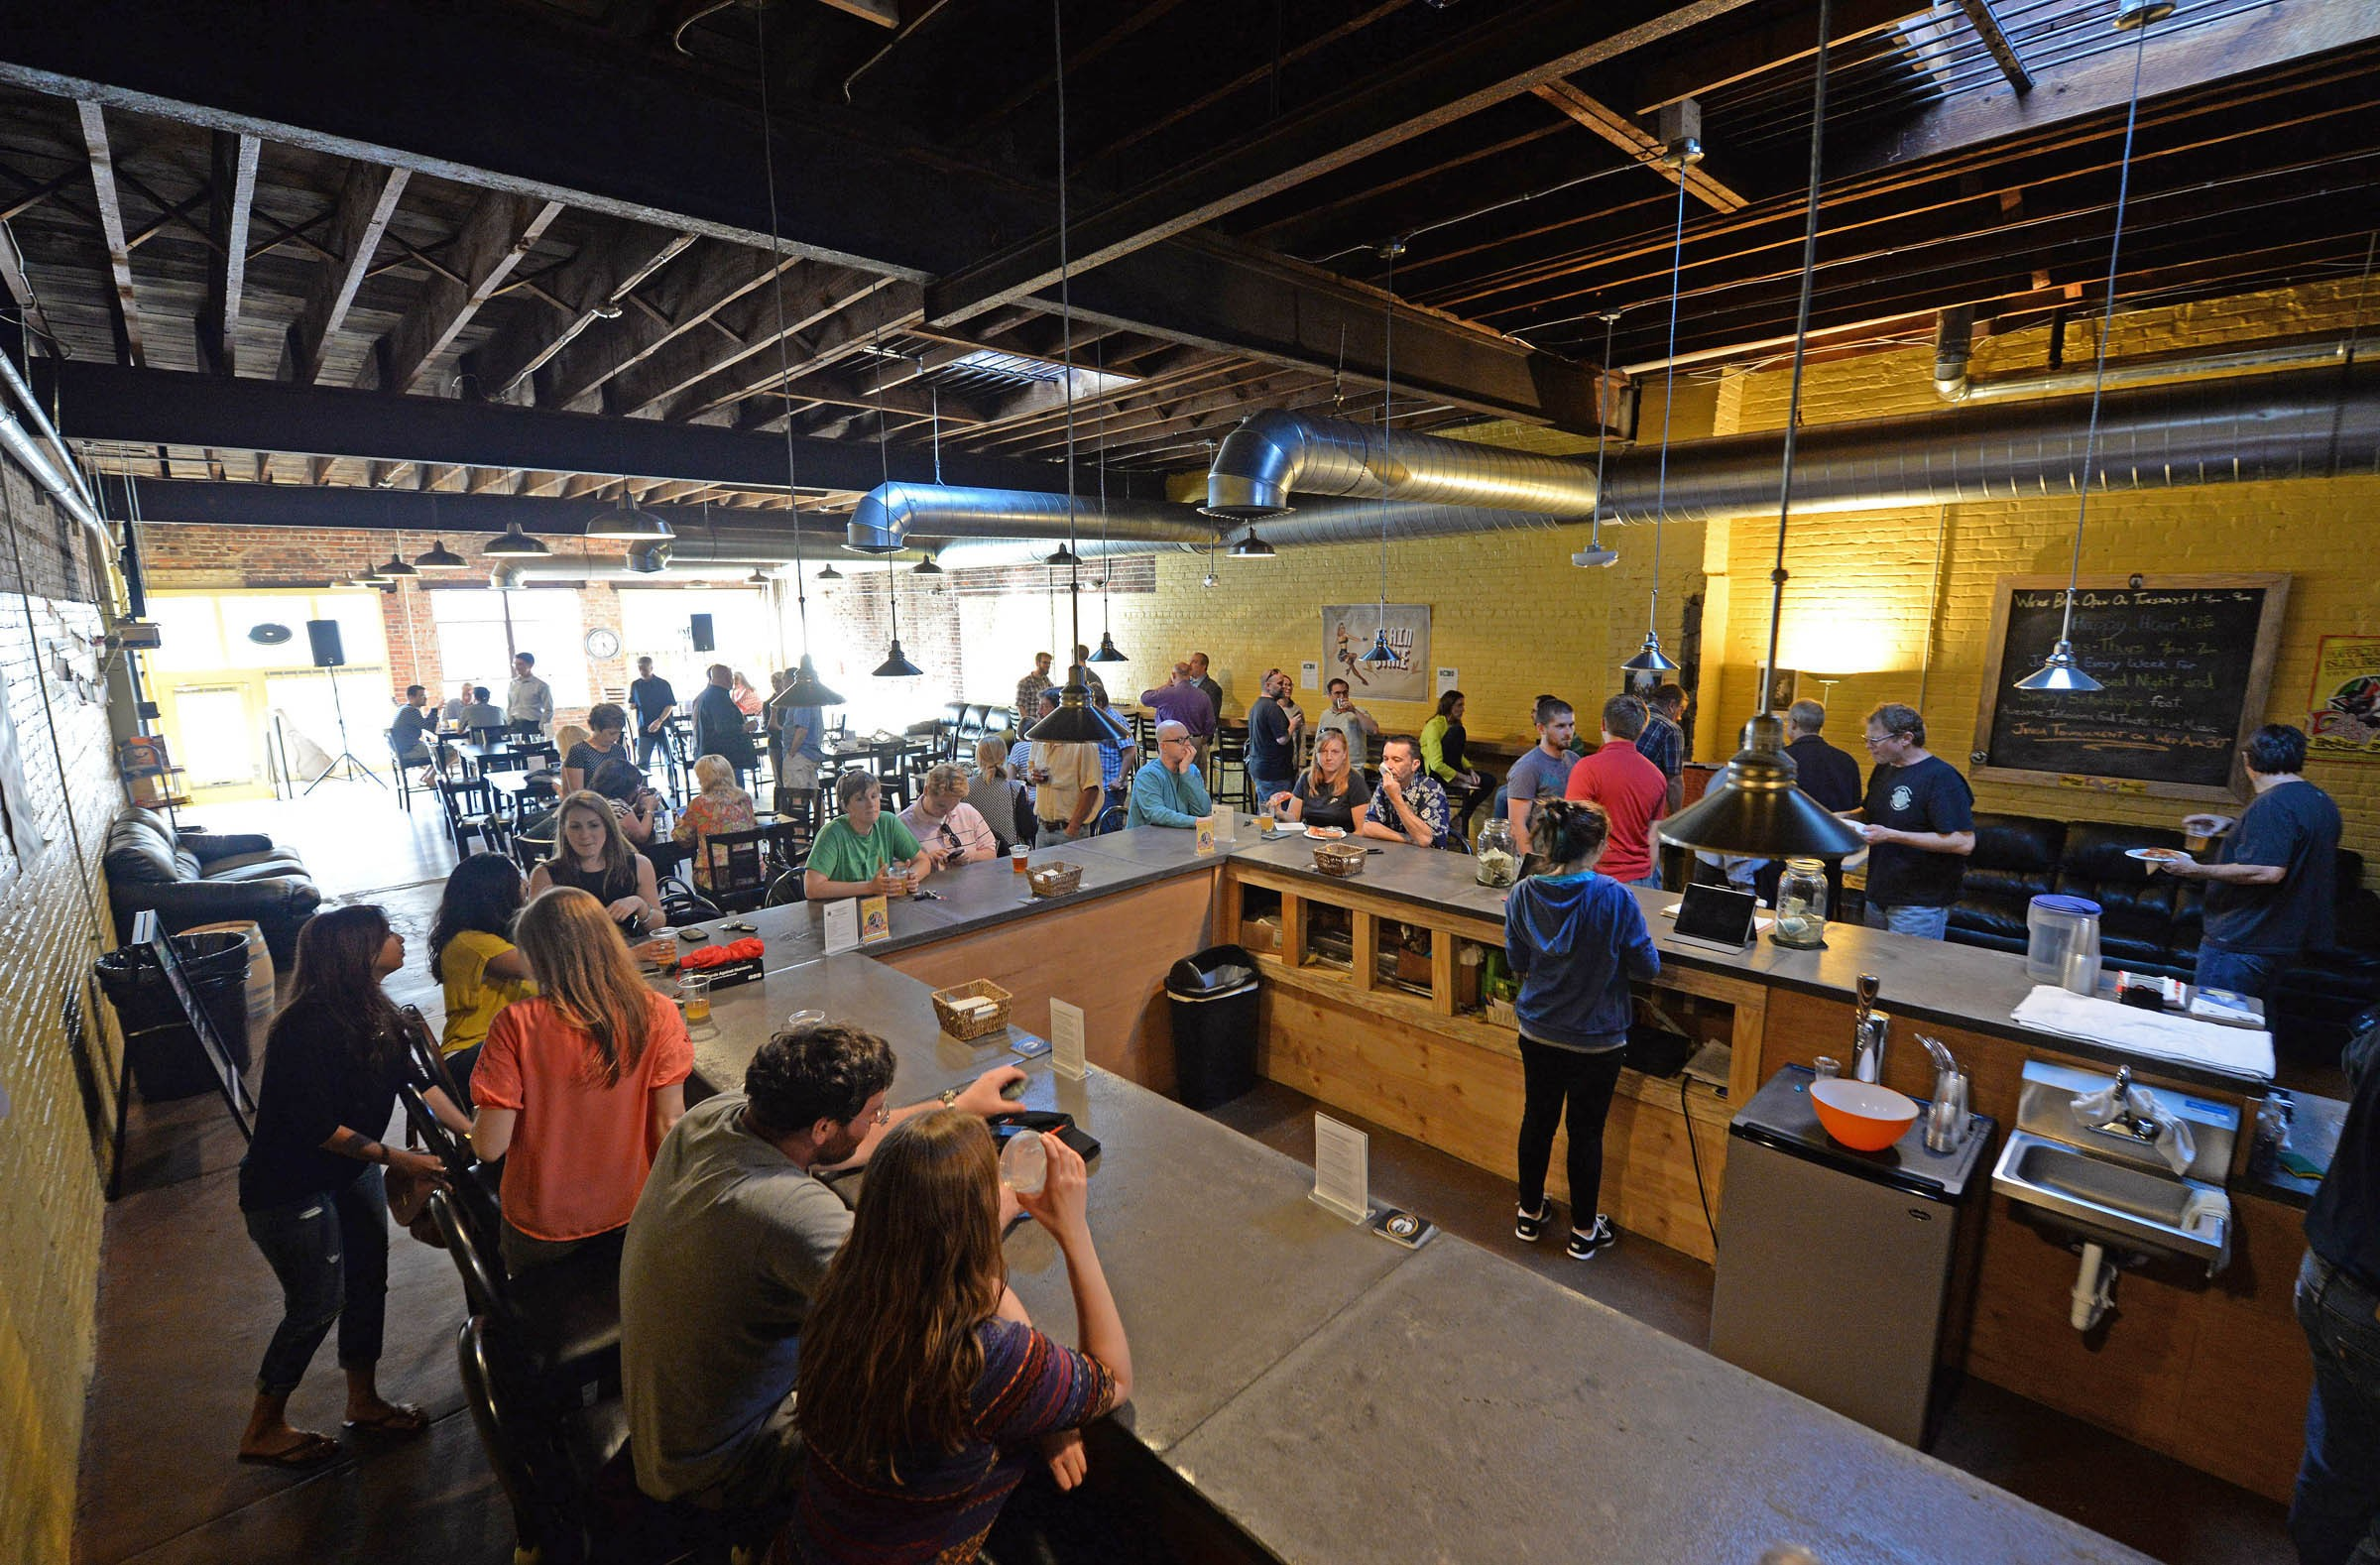 Isley Brewing Co., which opened in October 2013, is one of the breweries — along with Ardent Craft Ales — that have found a home in Scott's Addition. A third is on the way, and an urban winery concept has been proposed for the area. - SCOTT ELMQUIST